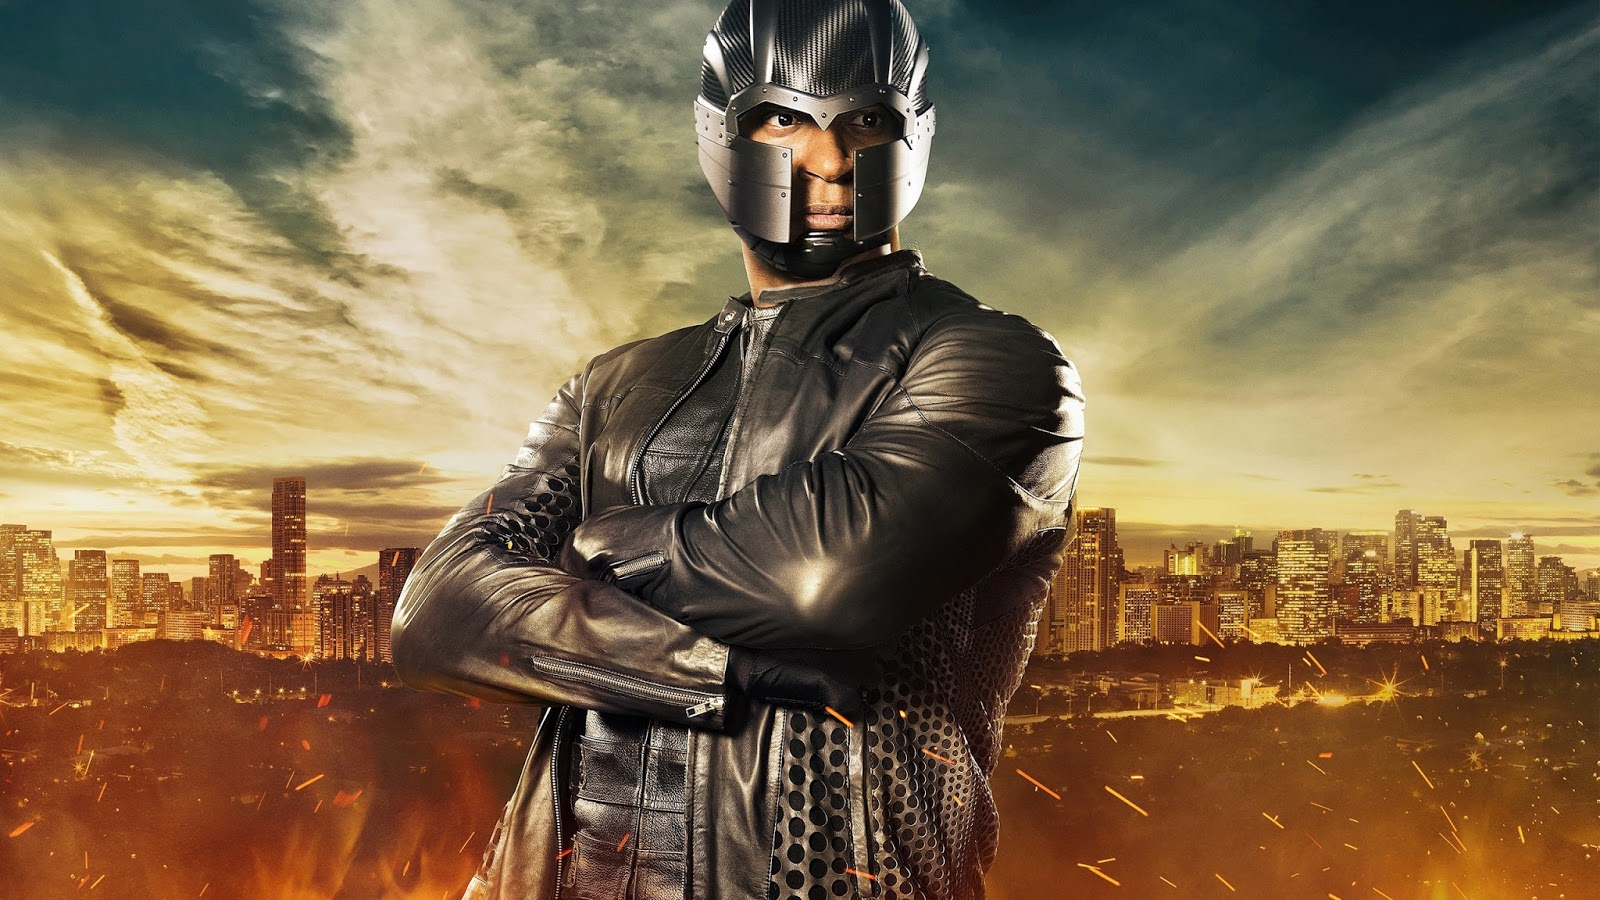 Arrow Season 5 Diggle To Get An Up Do Helmet